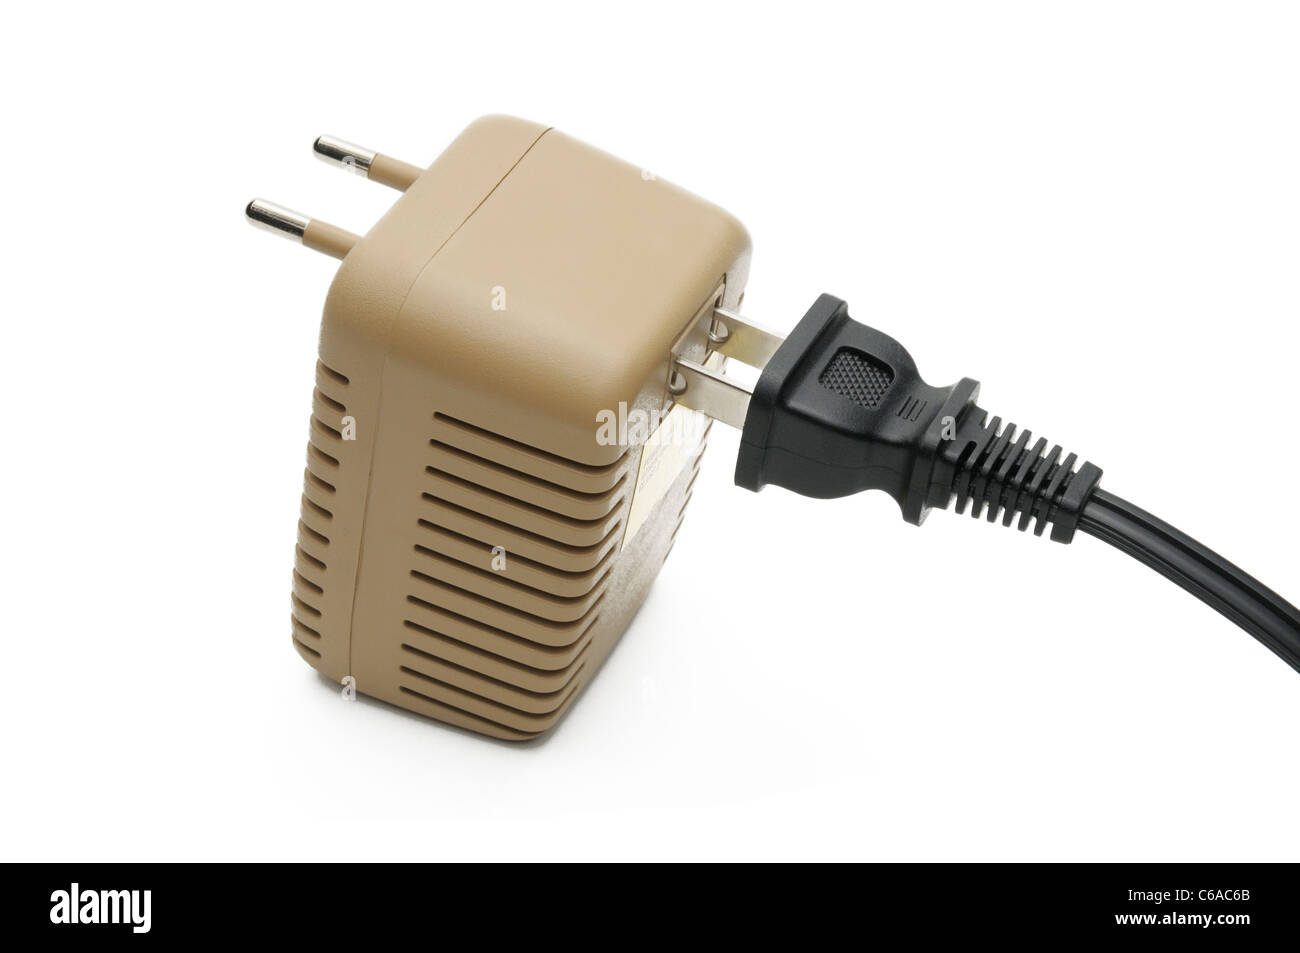 Plug Adapter And Voltage Converter The Unit Converts 220v